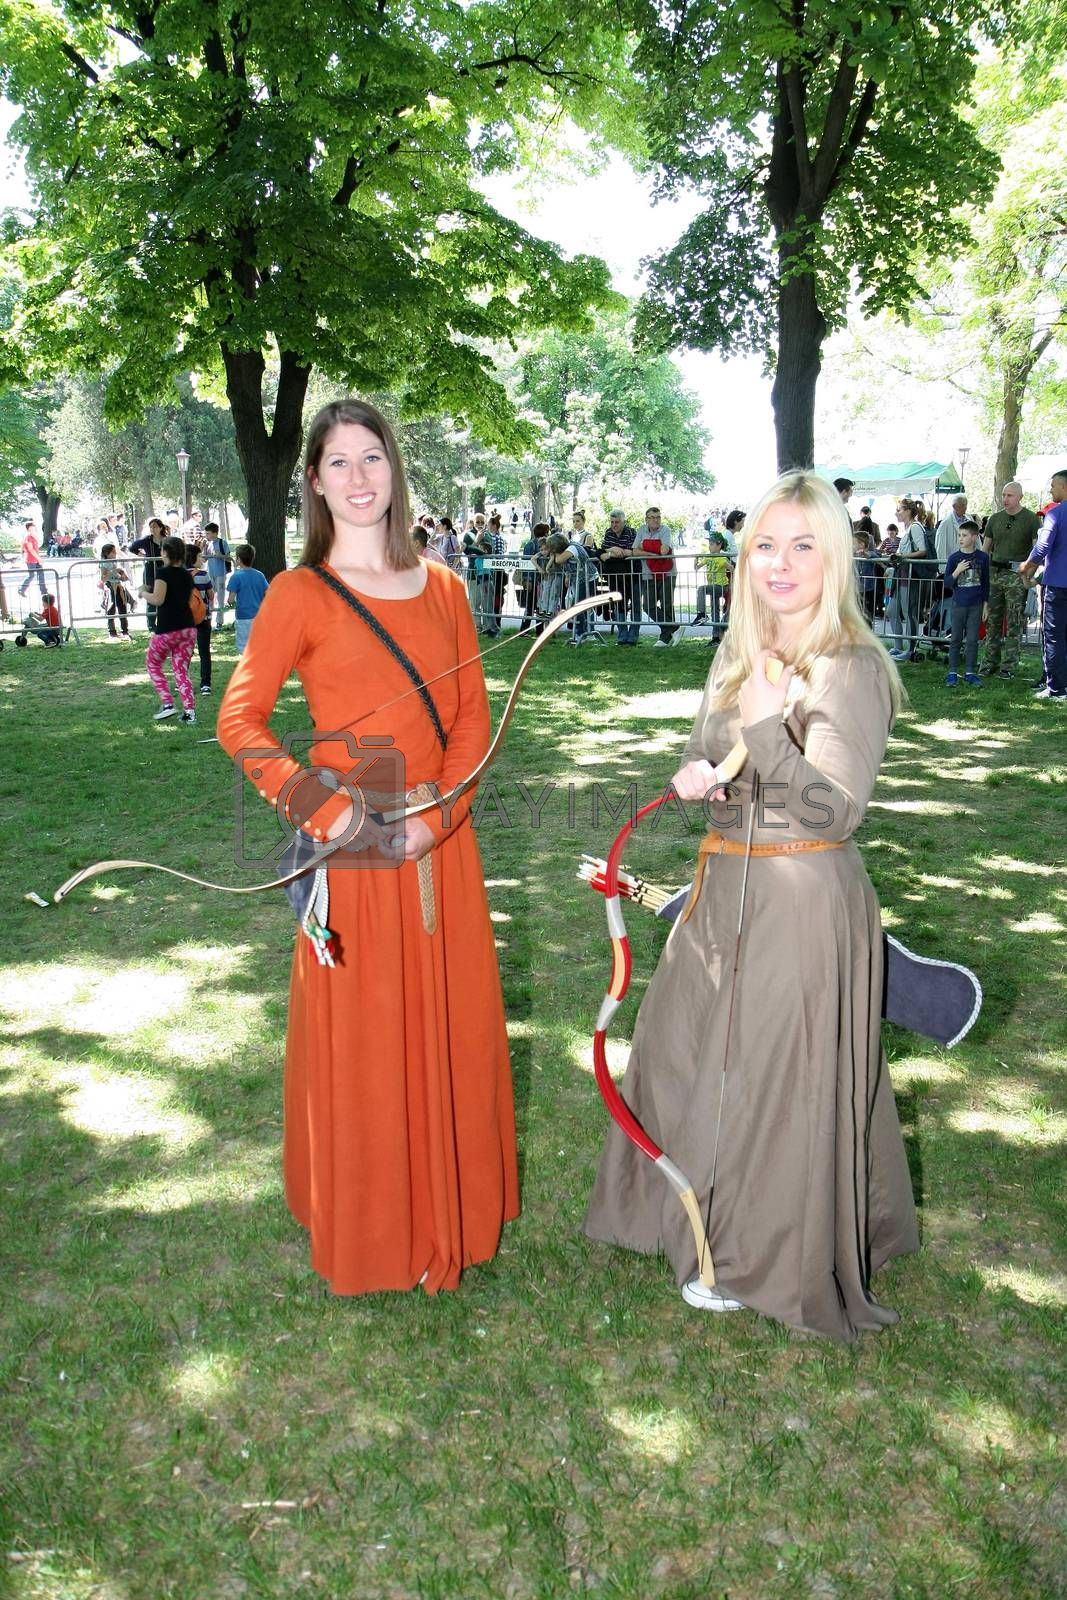 Participants of Belgrade Knight Fest held on 23 April in Belgrade,Serbia,posing in medieval clothes